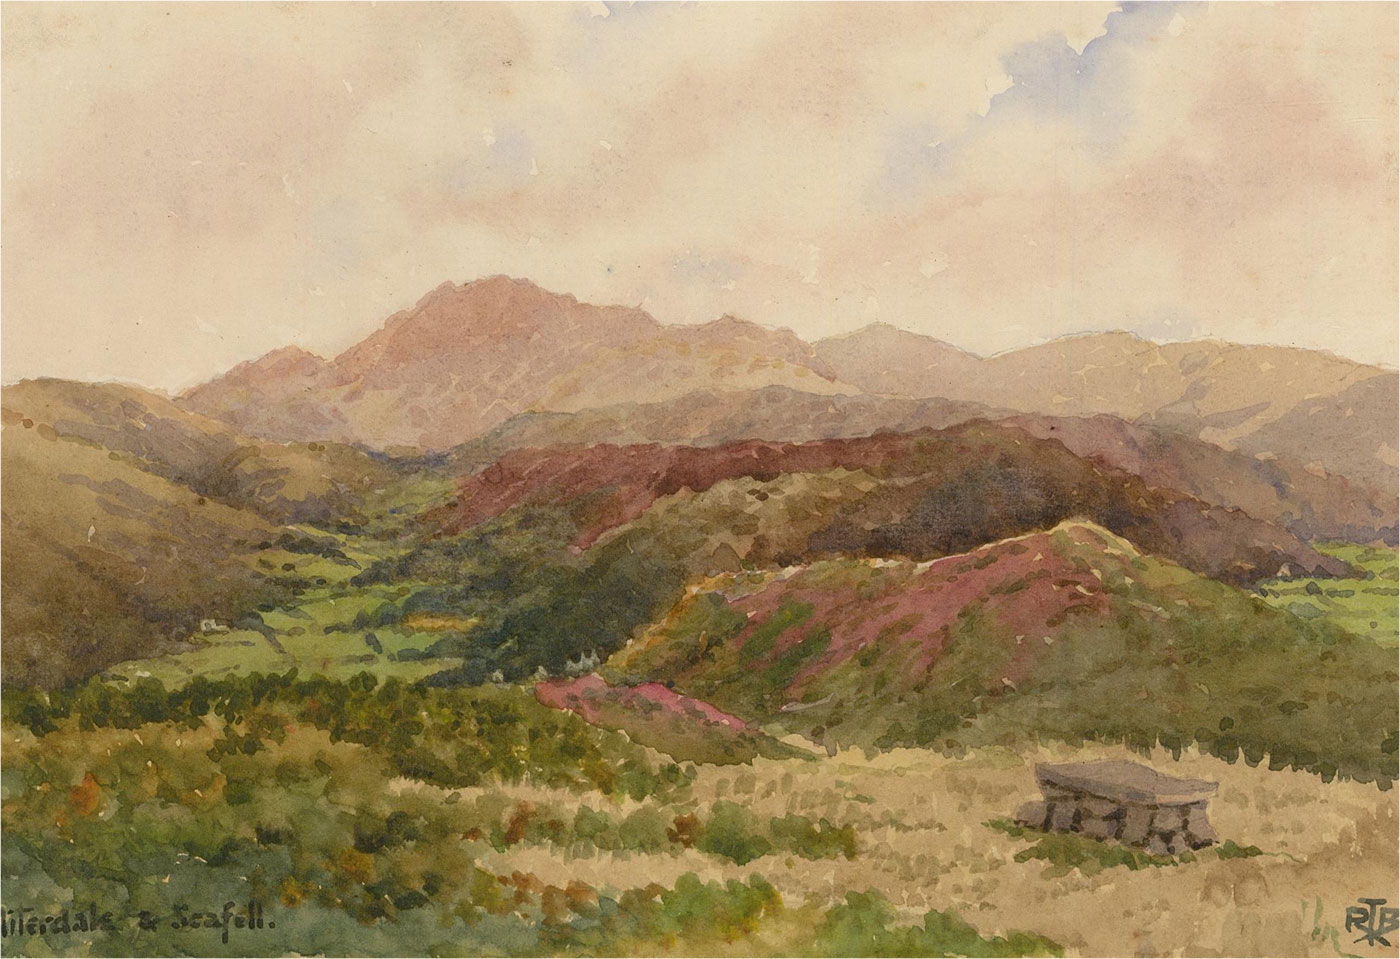 Raymond Turner Barker (1872-1945) - Watercolour, Miterdale and Scafell